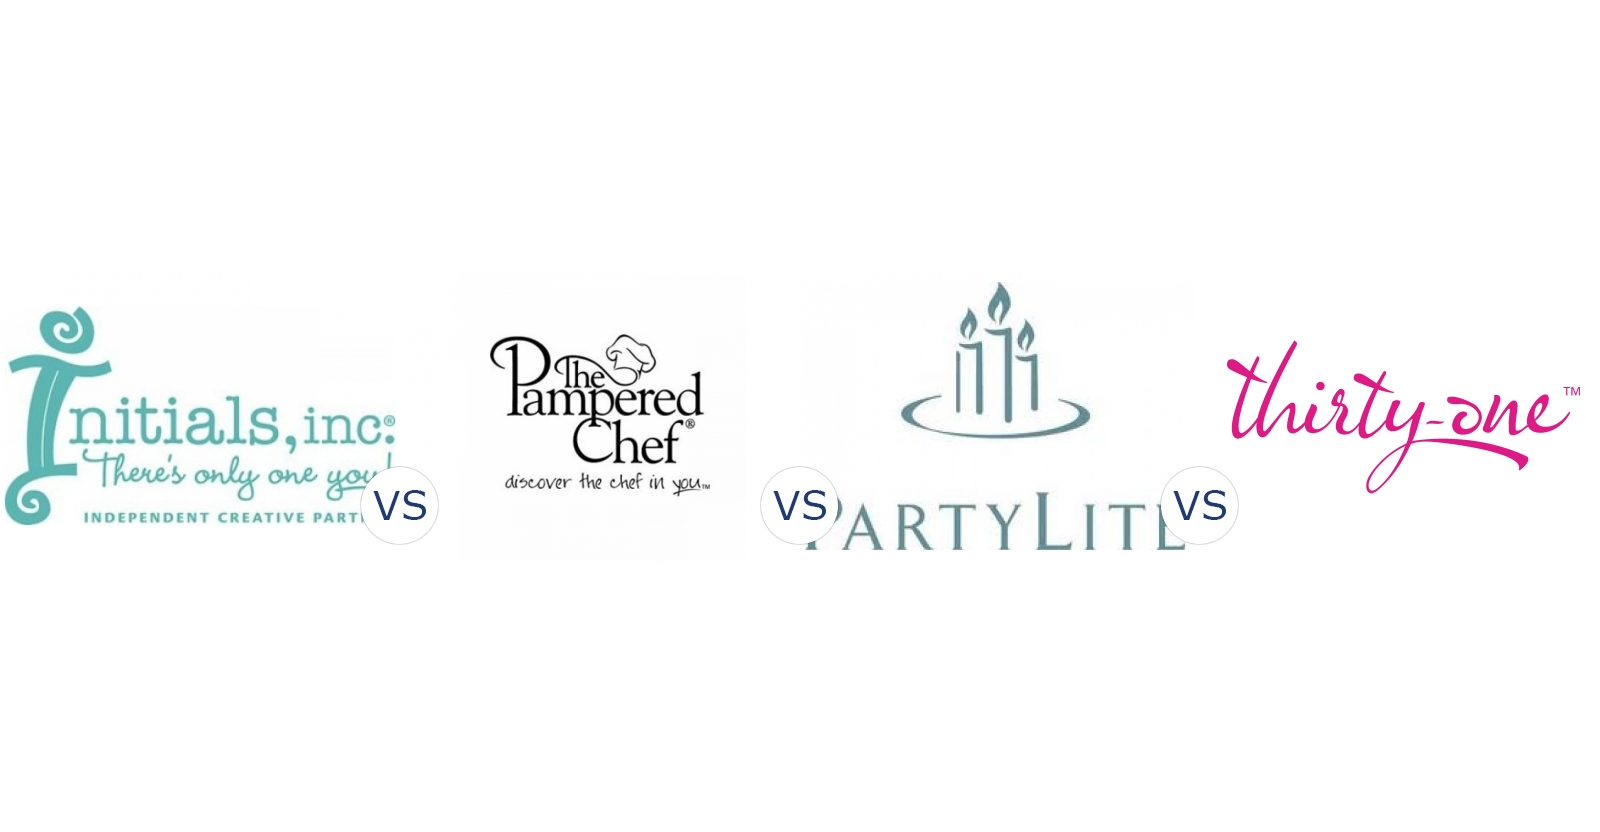 Initials Inc Vs Pampered Chef Vs Partylite Vs Thirty